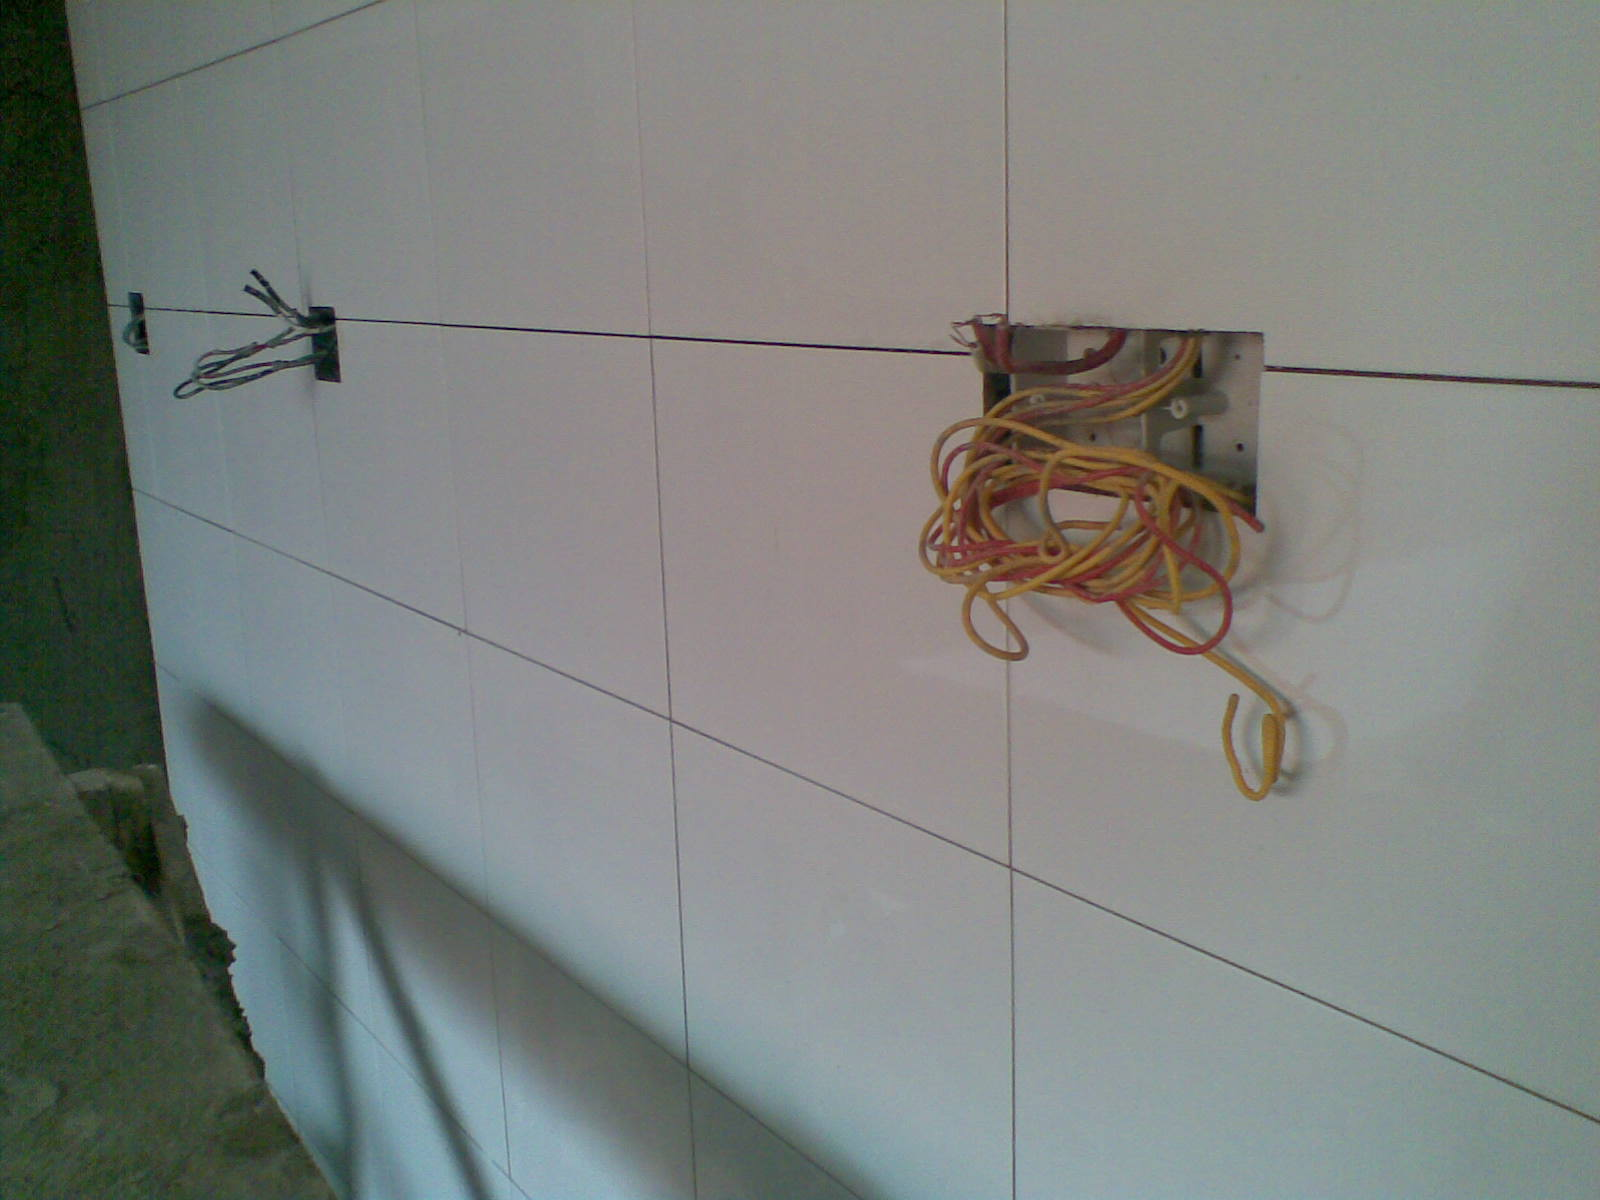 power outlet should be in the centre of the ceramic tiles..to repair